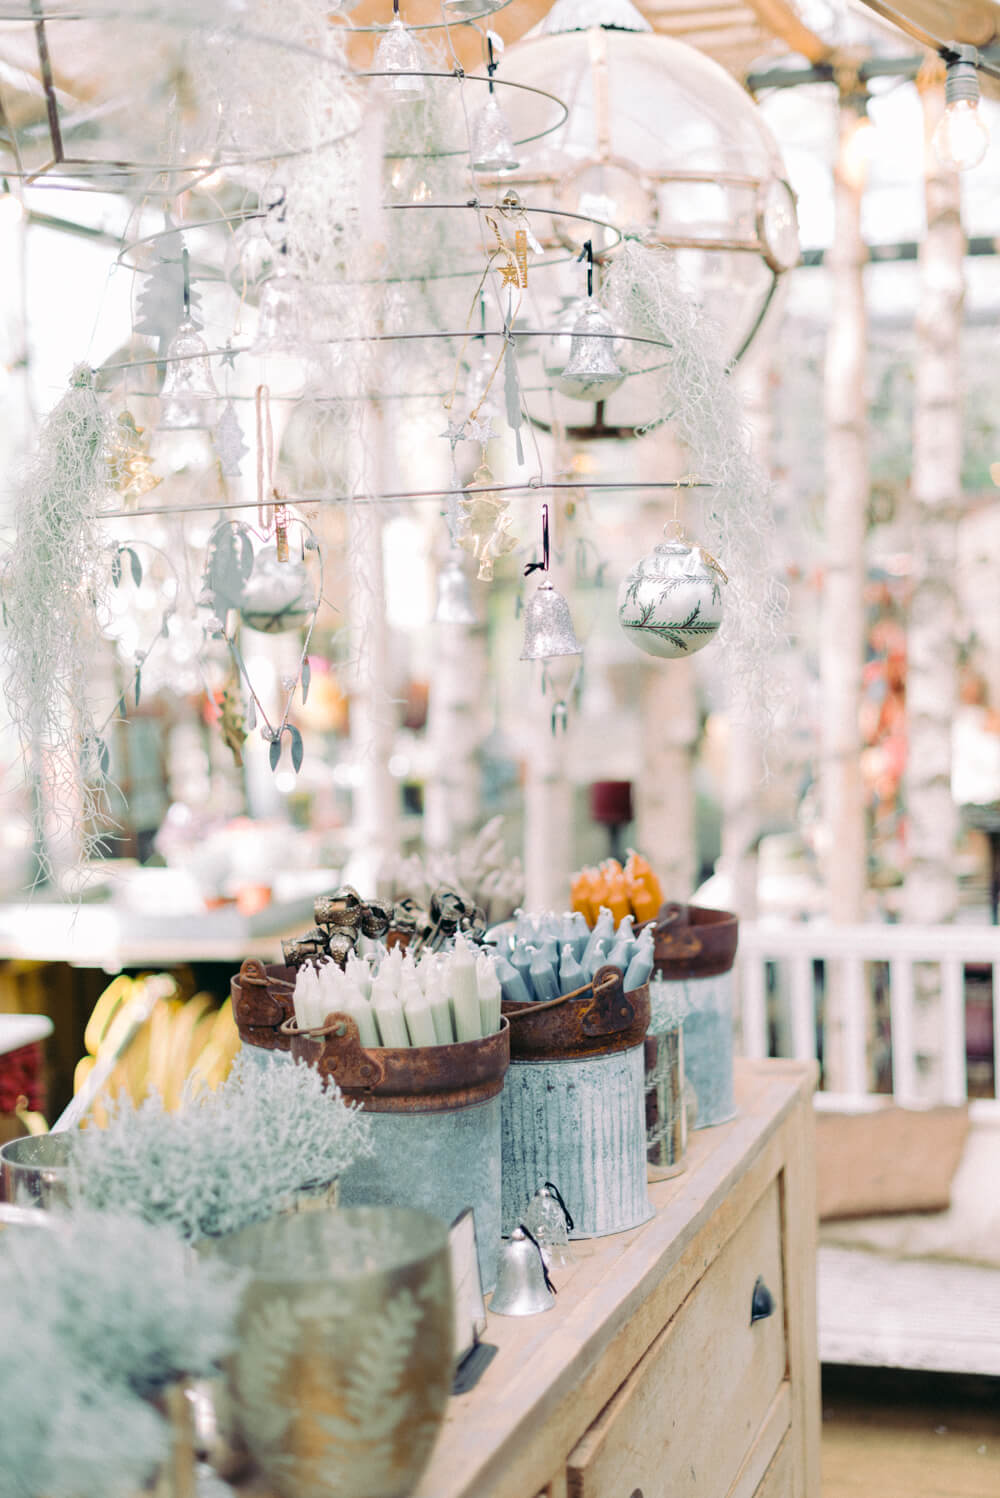 trinkets, tapered candles and Christmas decors at the Petersham Nurseries in Richmond - Photo by Cristina Ilao